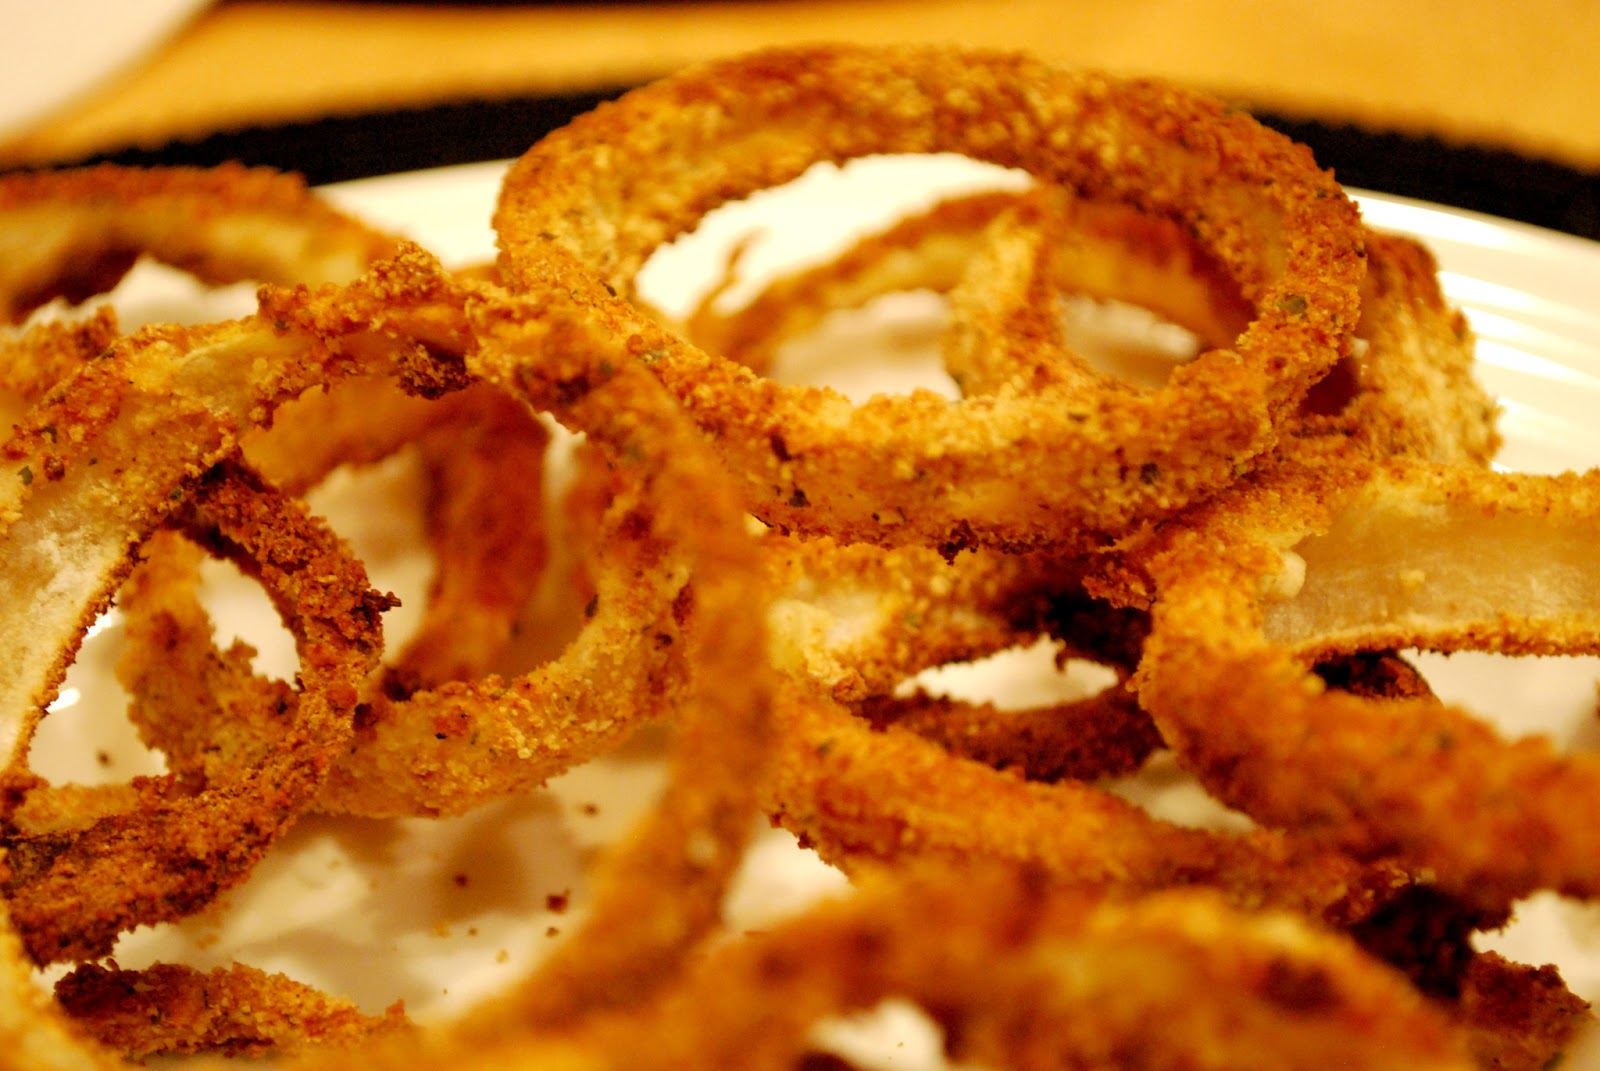 Girl's Guilty Pleasures: Crispy Oven Baked Onion Rings